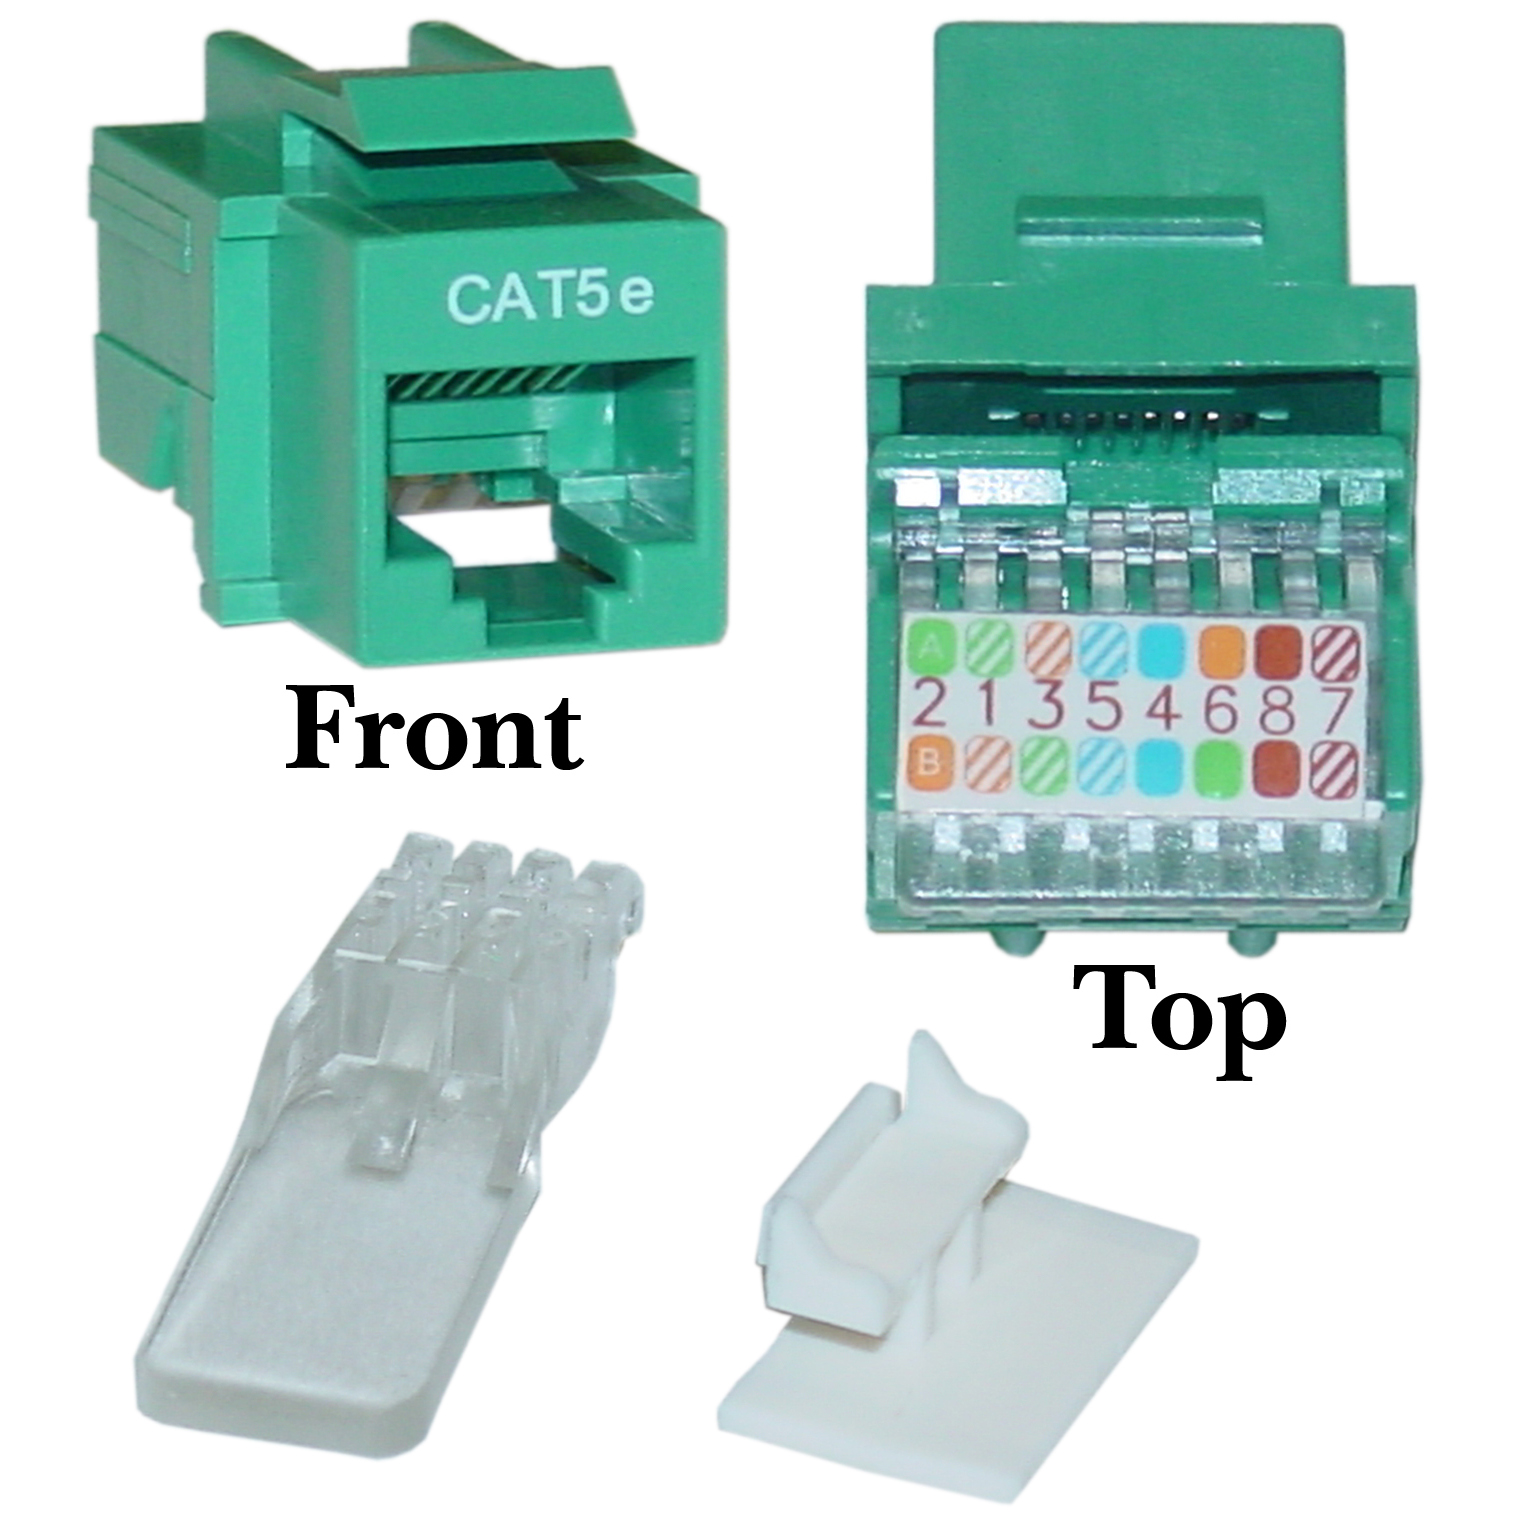 311 120gr green cat5e rj45 keystone jack toolless cablewholesale cat 5e jack diagram at webbmarketing.co